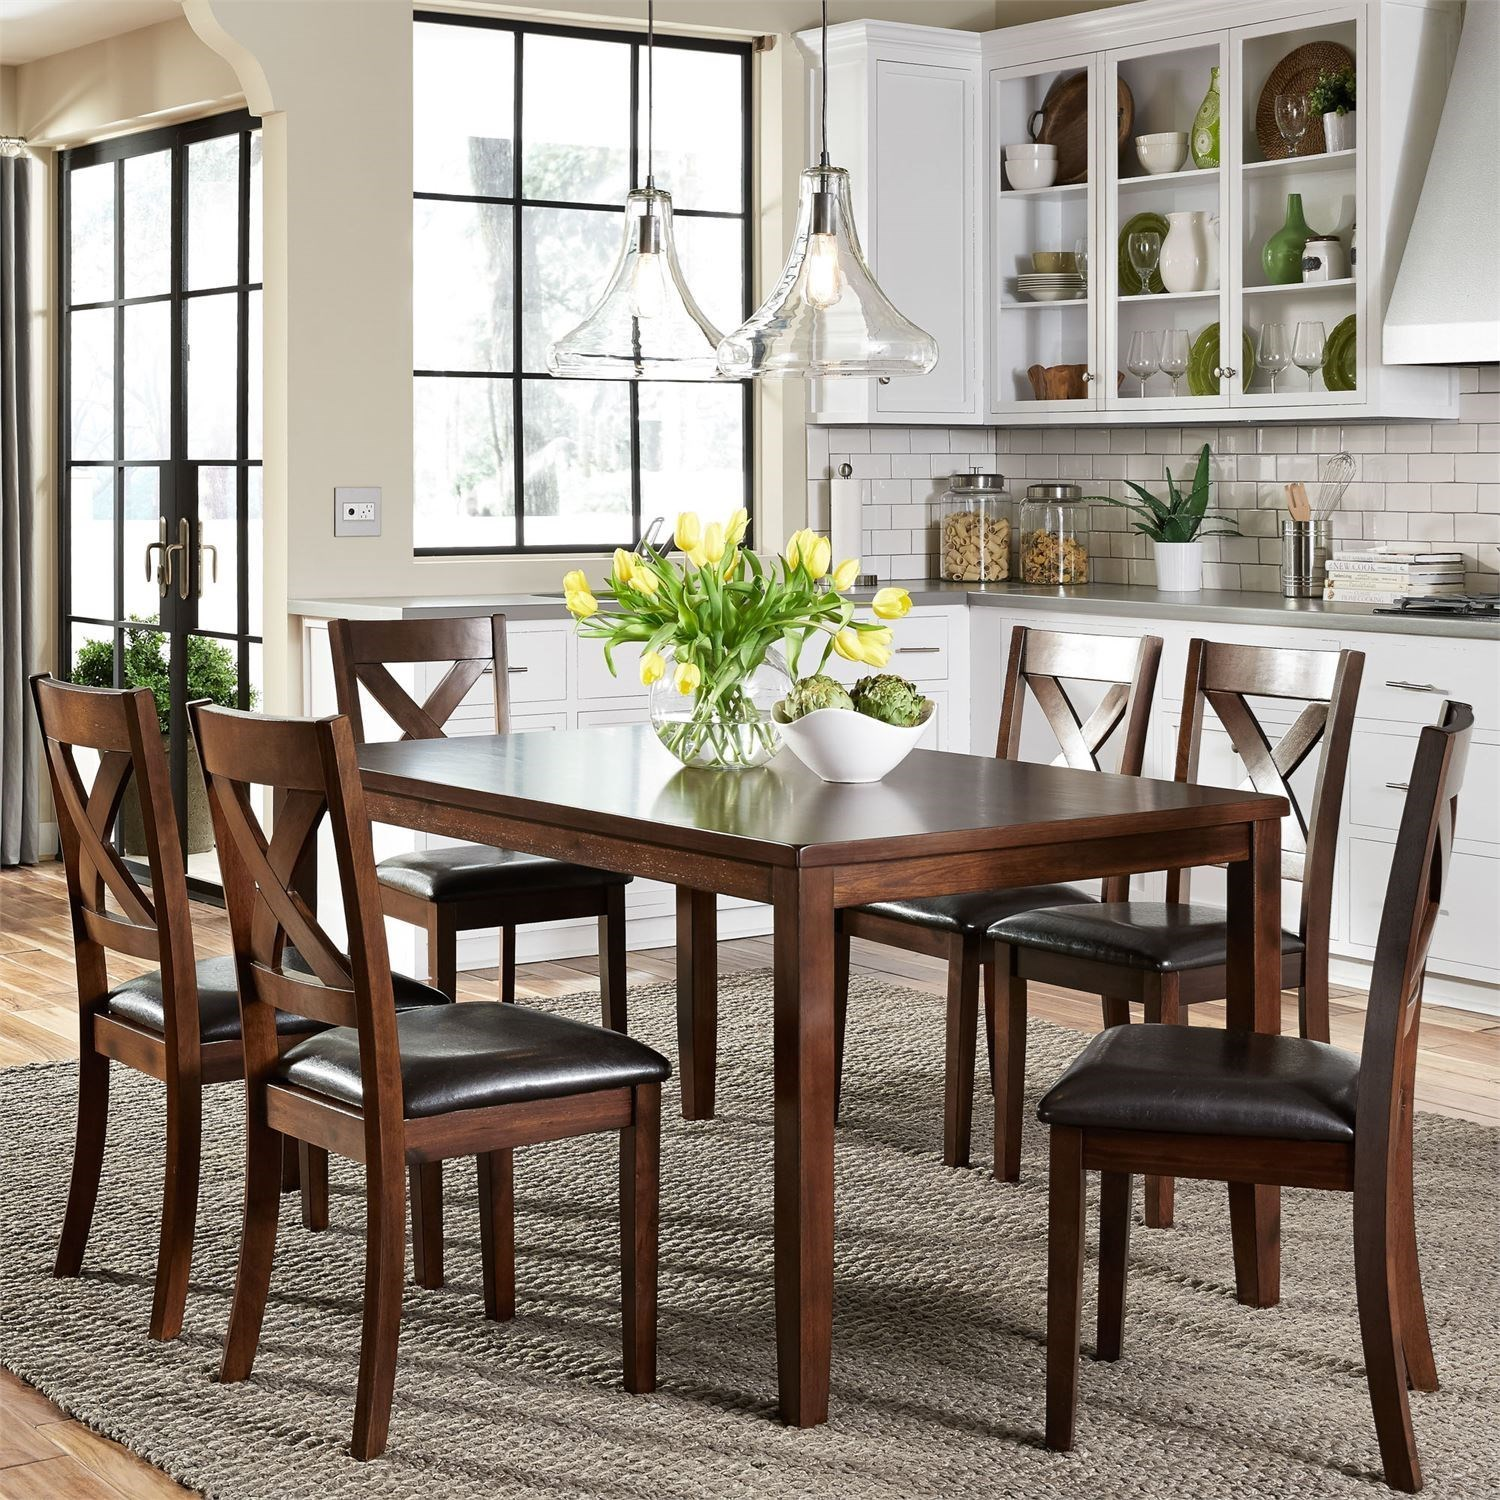 Thornton 7 Piece Rectangular Table Set by Liberty Furniture at Steger's Furniture